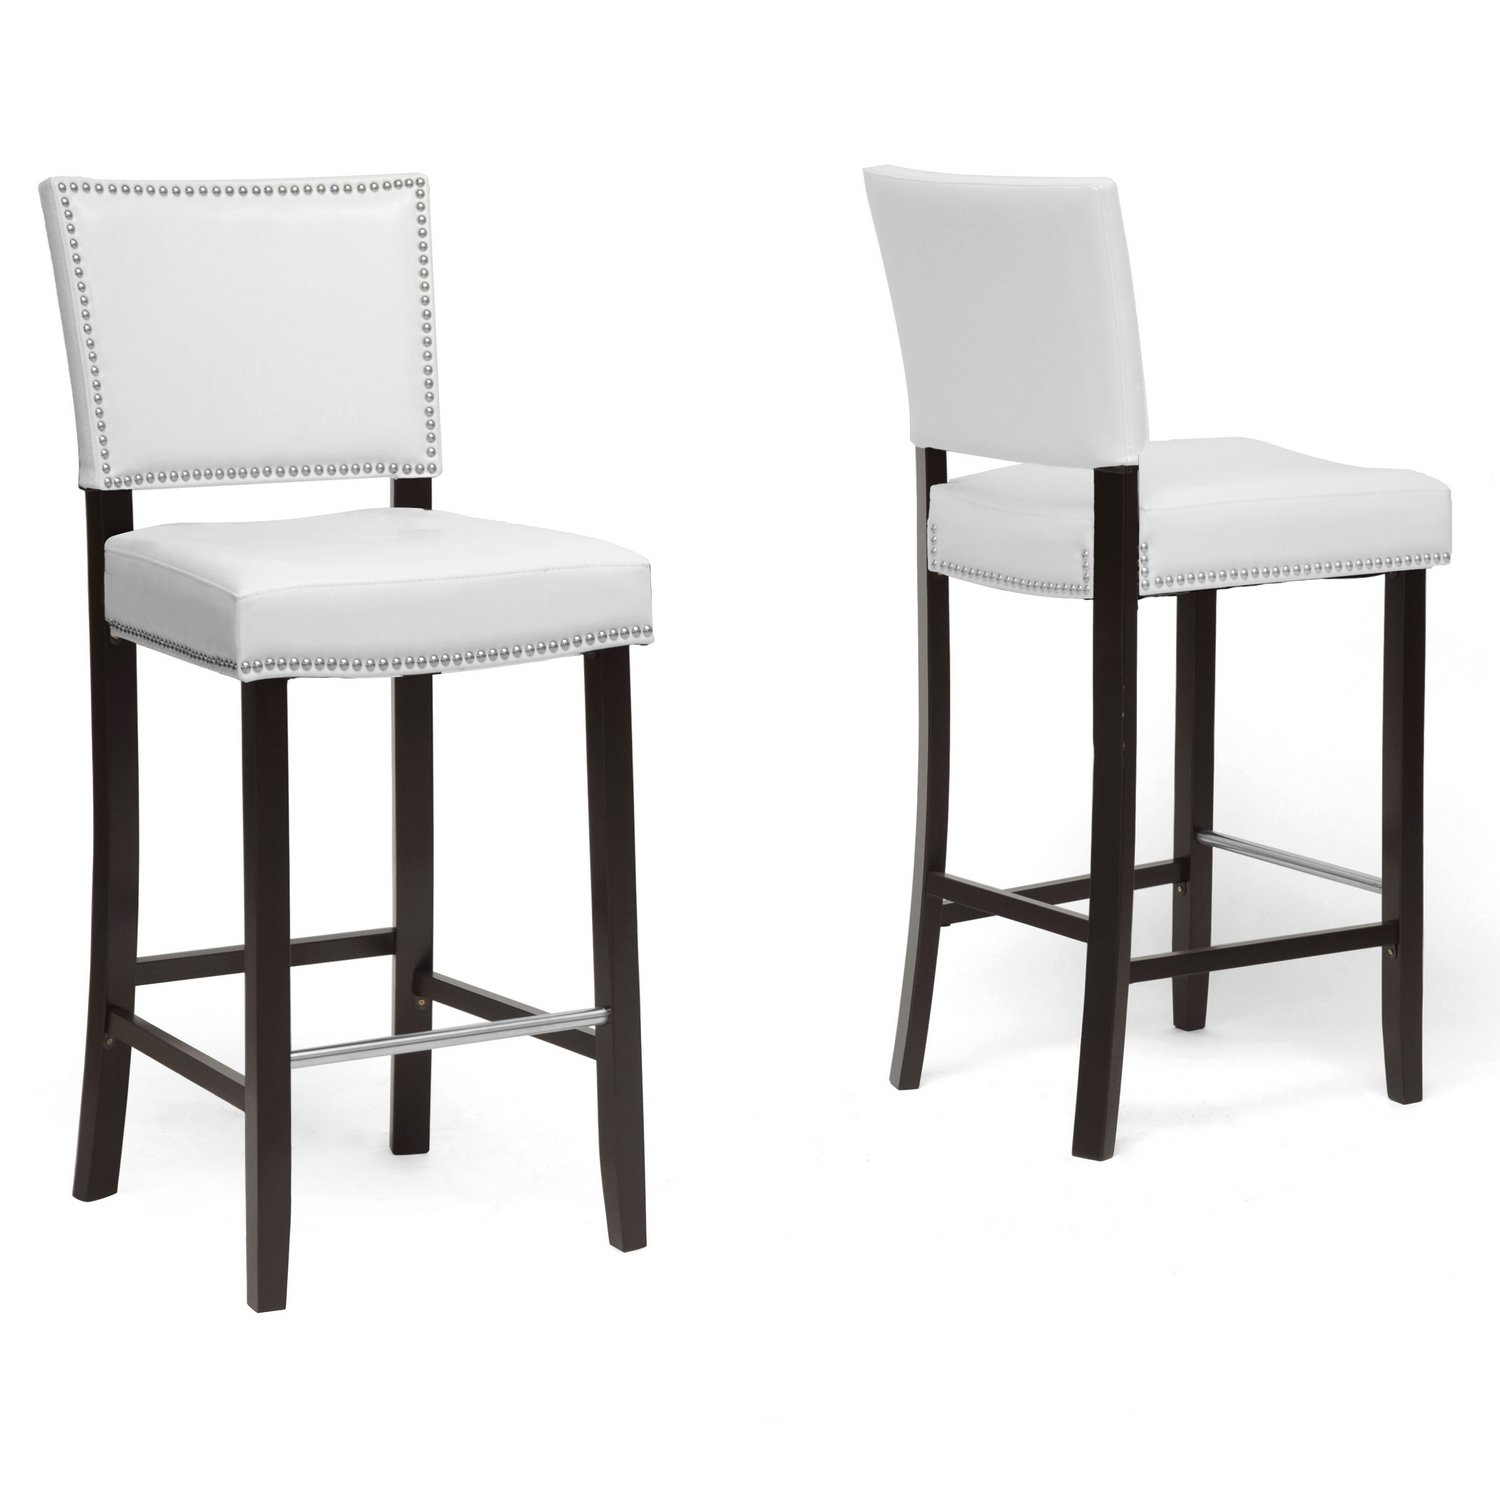 Amazon.com Baxton Studio Aries Modern Bar Stool with Nail Head Trim White Set of 2 Kitchen u0026 Dining  sc 1 st  Amazon.com & Amazon.com: Baxton Studio Aries Modern Bar Stool with Nail Head ... islam-shia.org